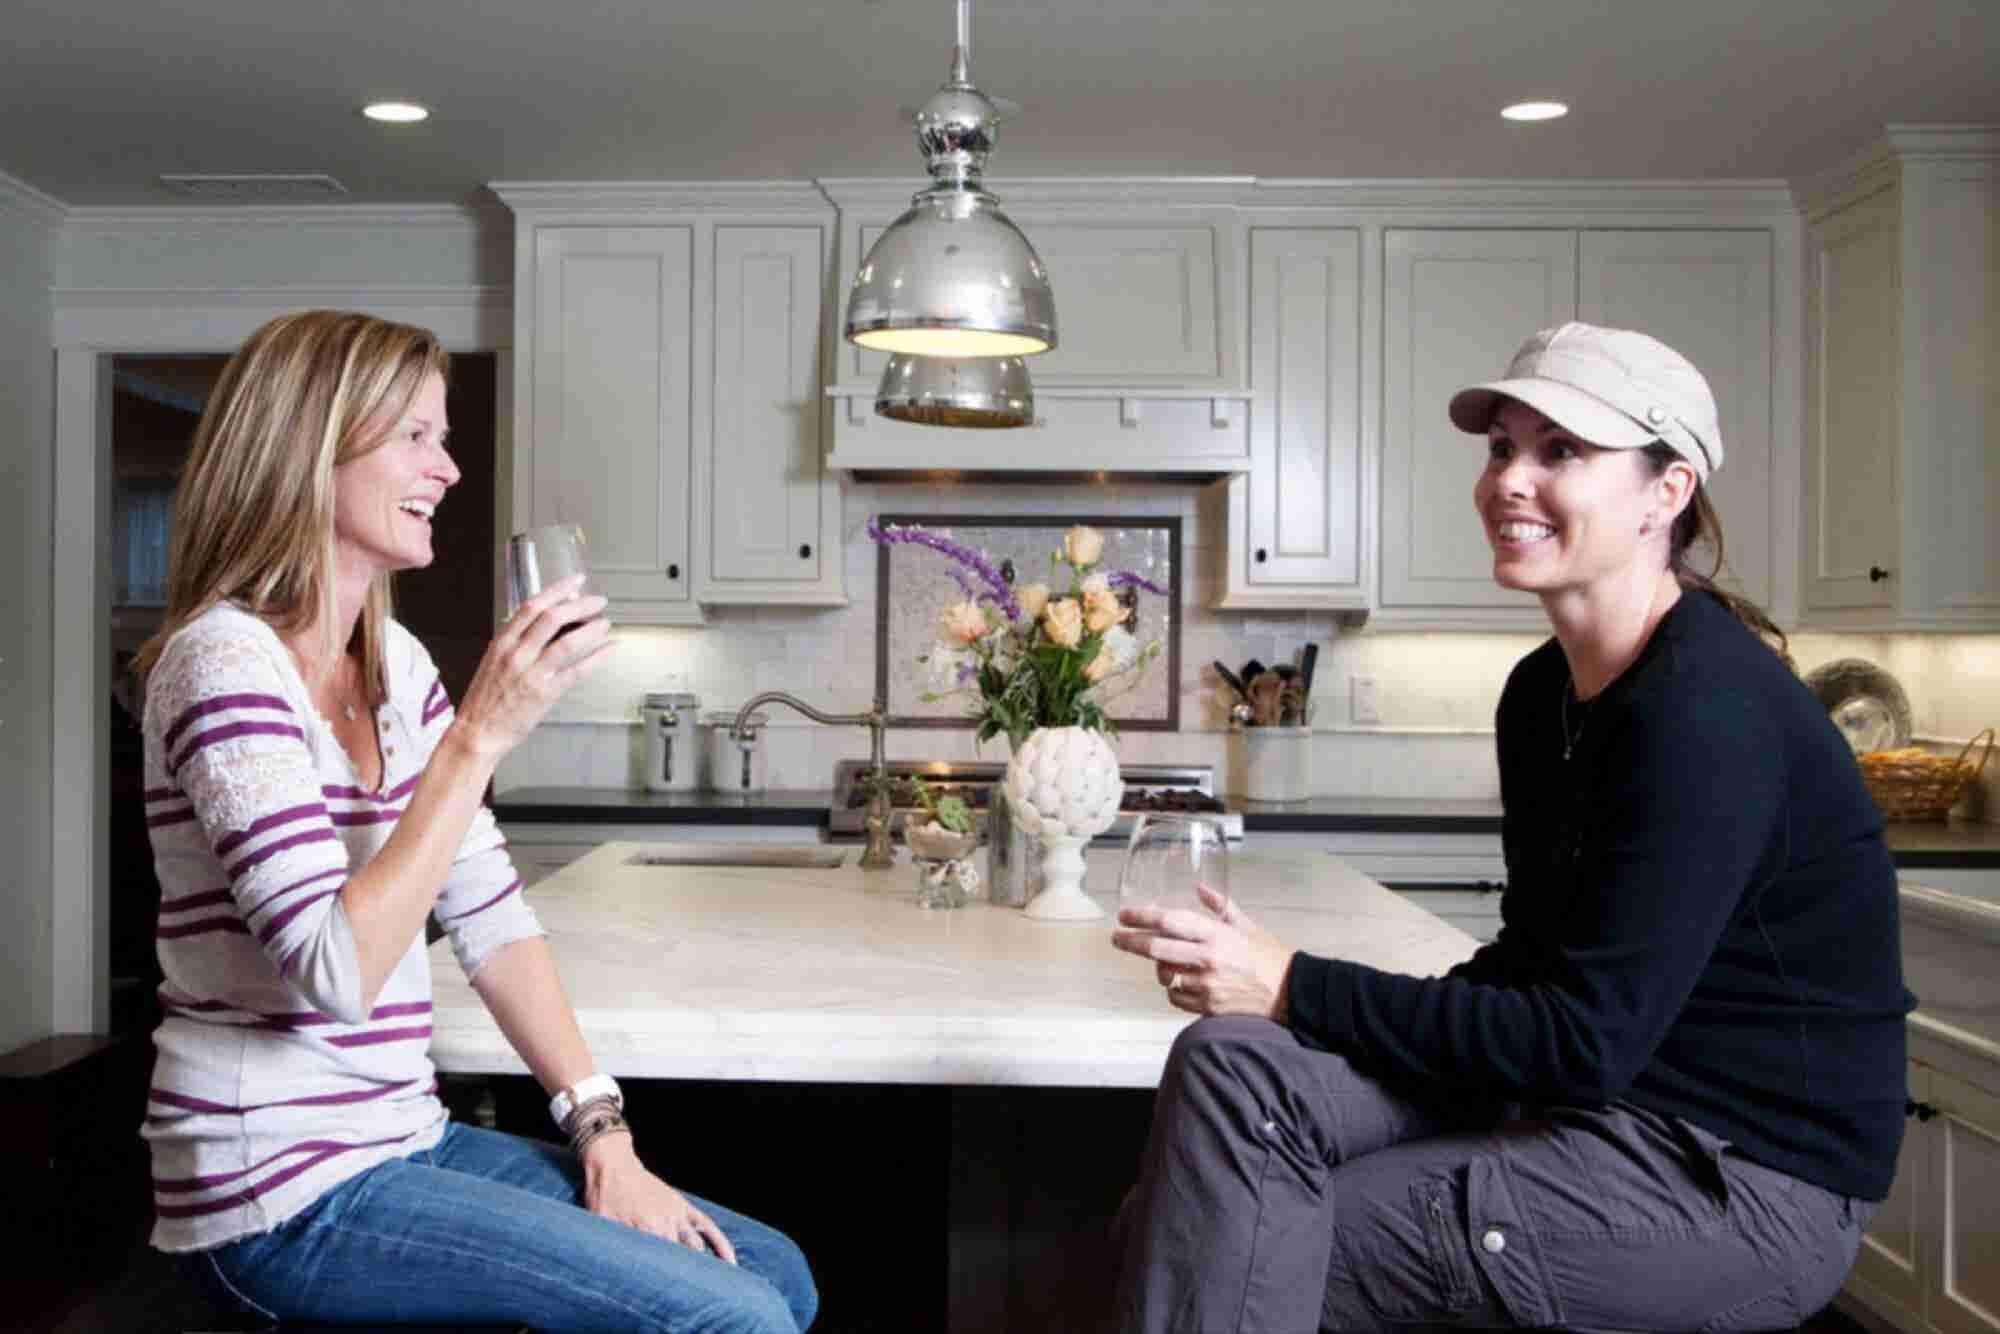 Decorate With Intention: Let Your House Help You De-Stress